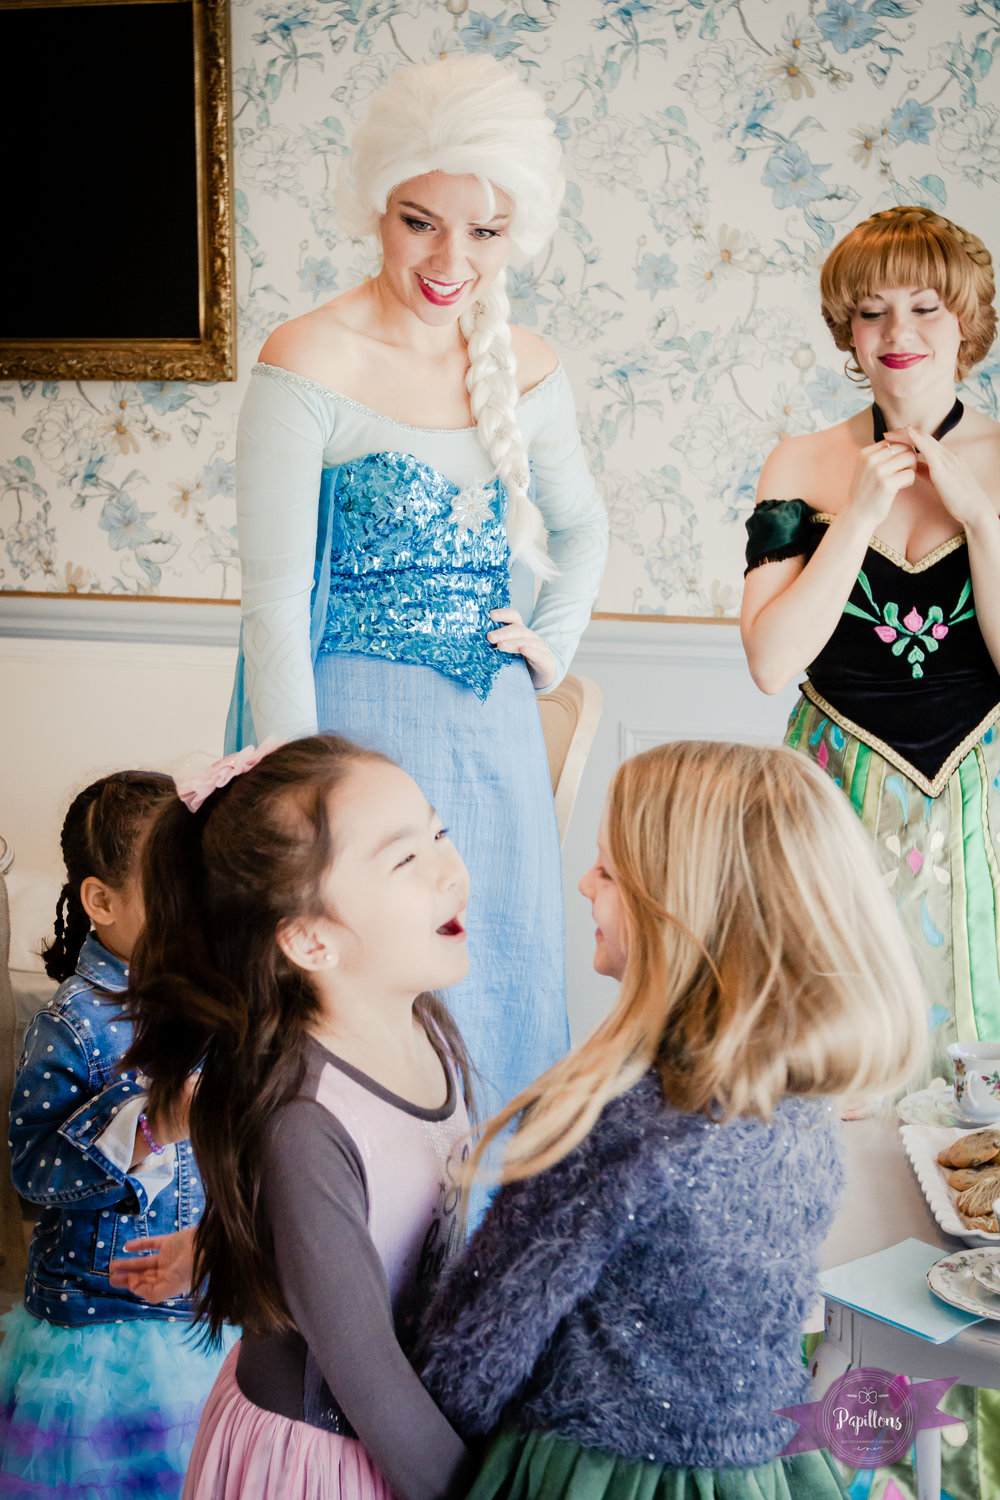 french confection co best friends queen elsa princess anna kids tea party burbank los angeles (1 of 1).jpg